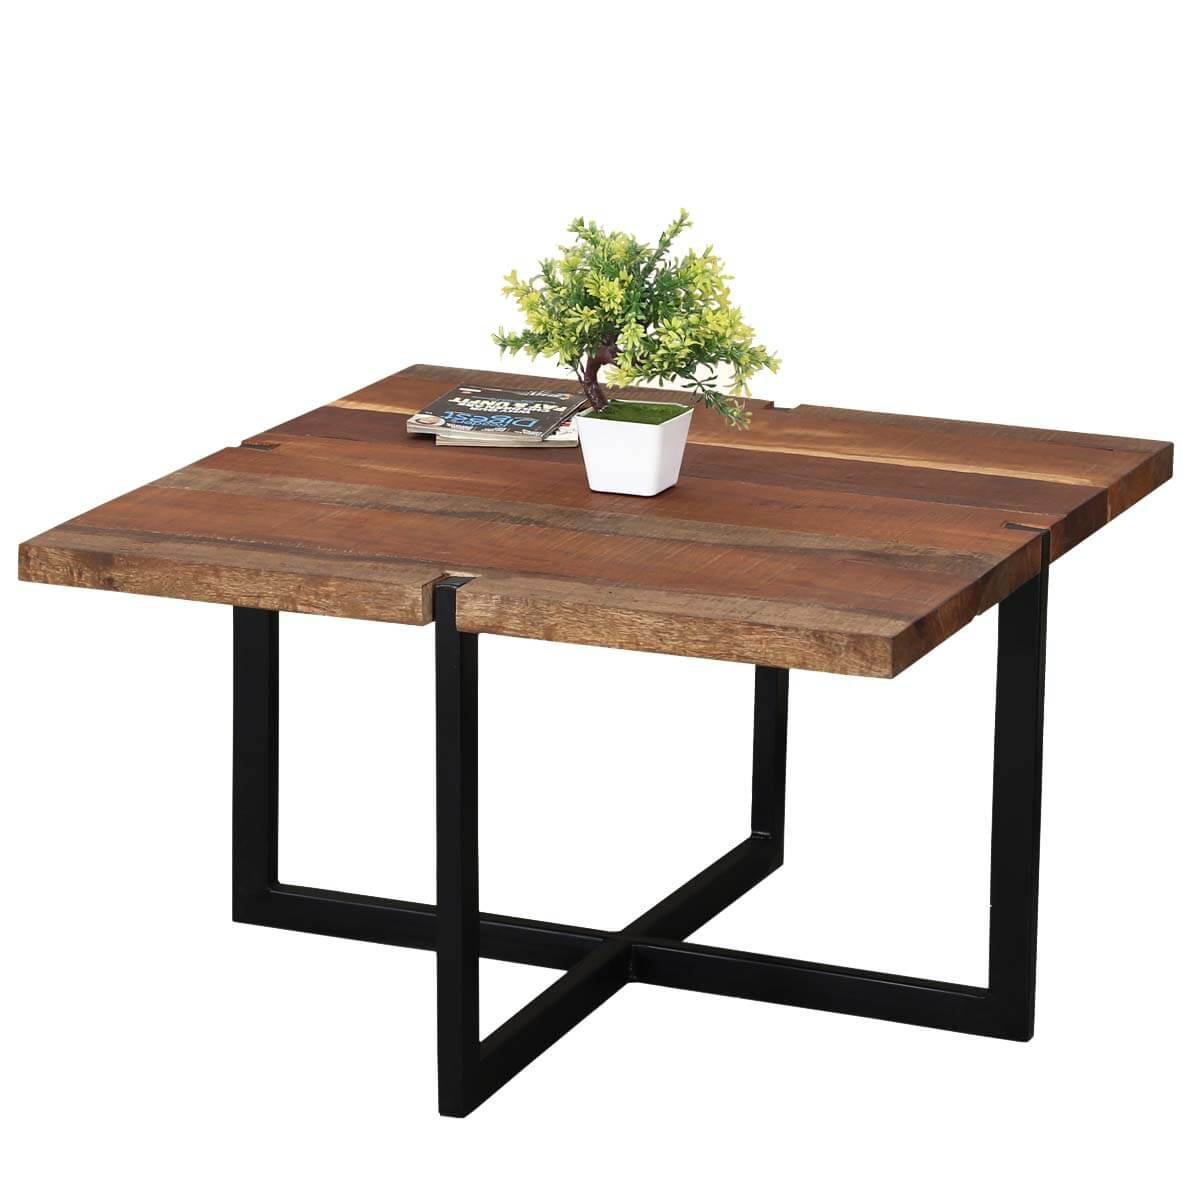 - Suffolk Reclaimed Wood & Iron Square Coffee Table